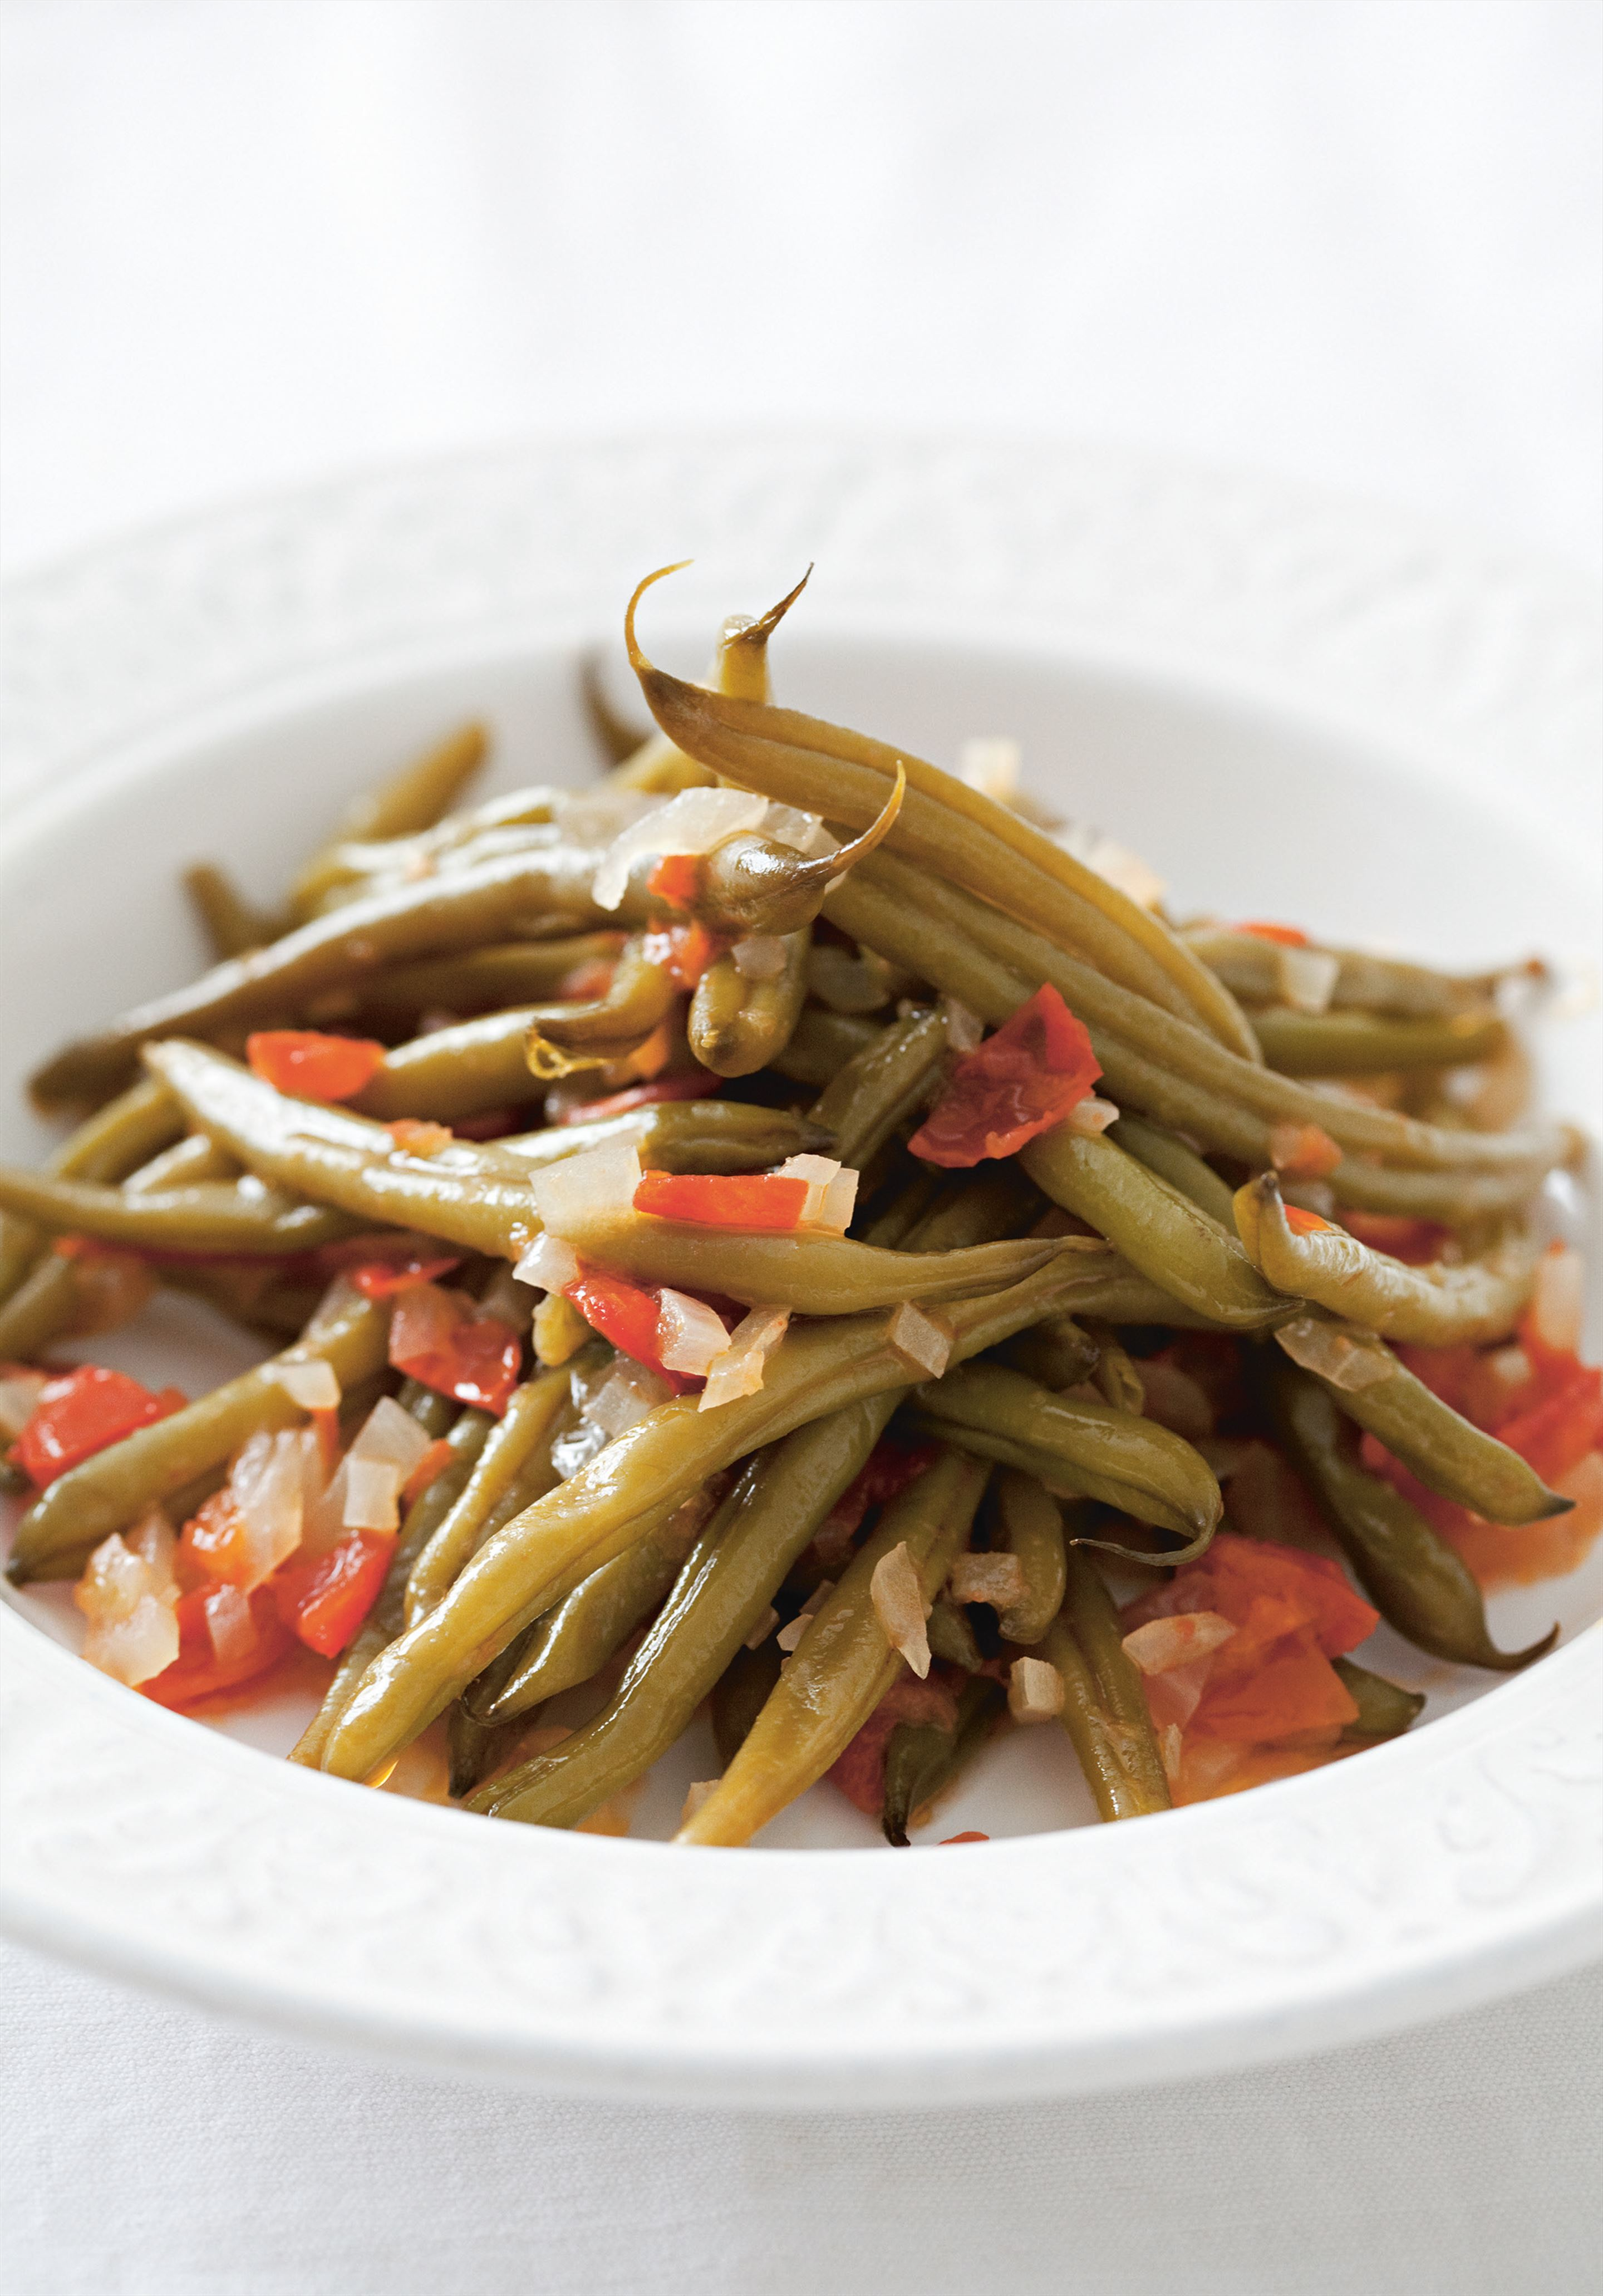 Slow-cooked green beans in olive oil